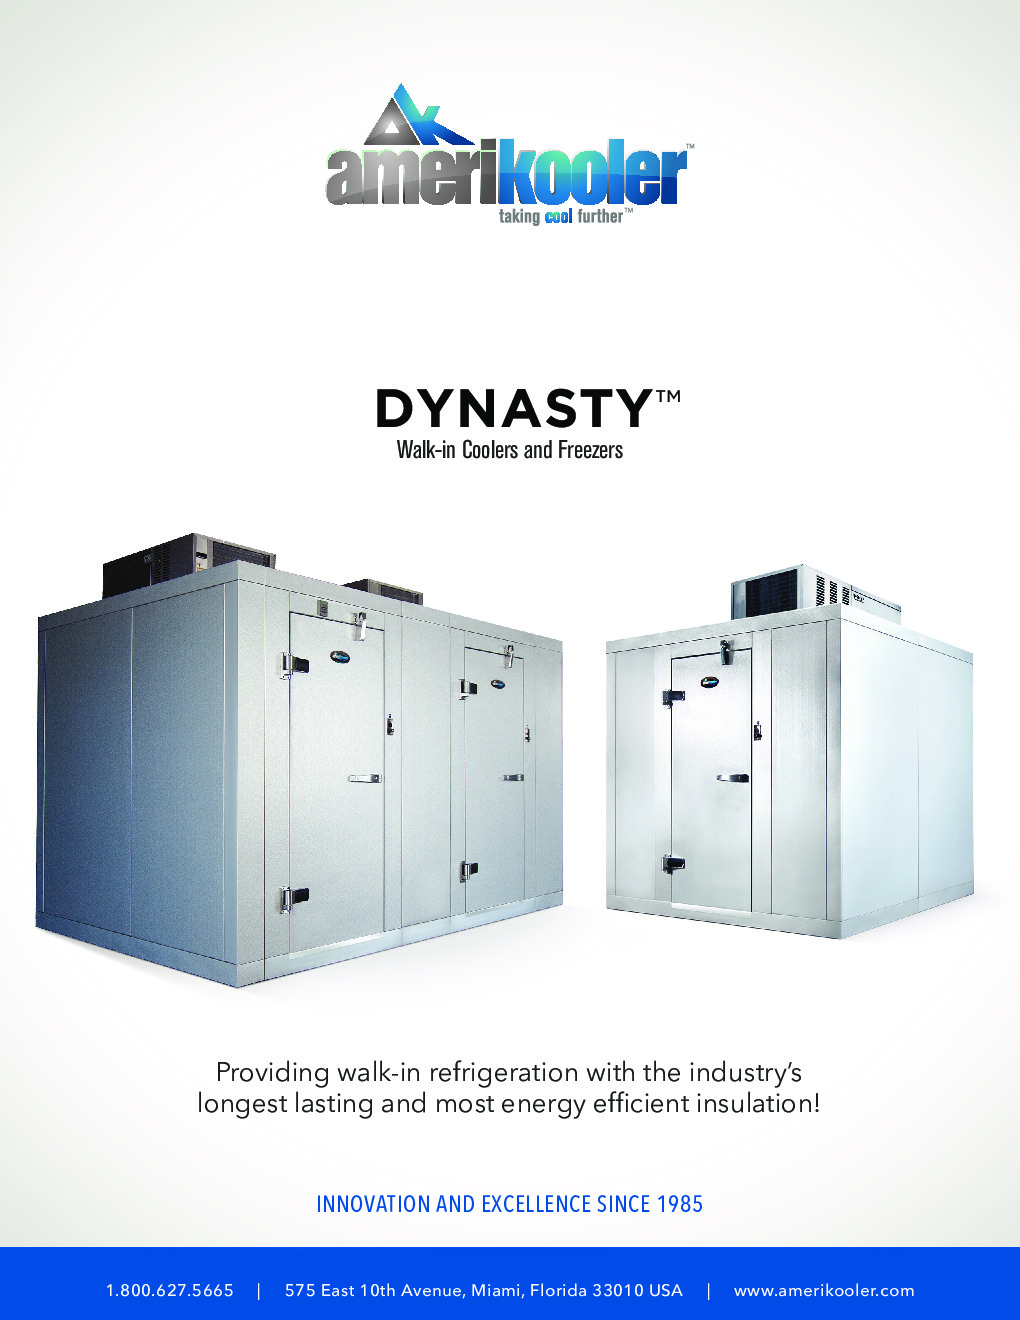 AmeriKooler DW081677N-5/11-SC 8' X 16' Walk-In Cooler, 11' L Cooler without Floor and 5' L Freezer, Self Contained